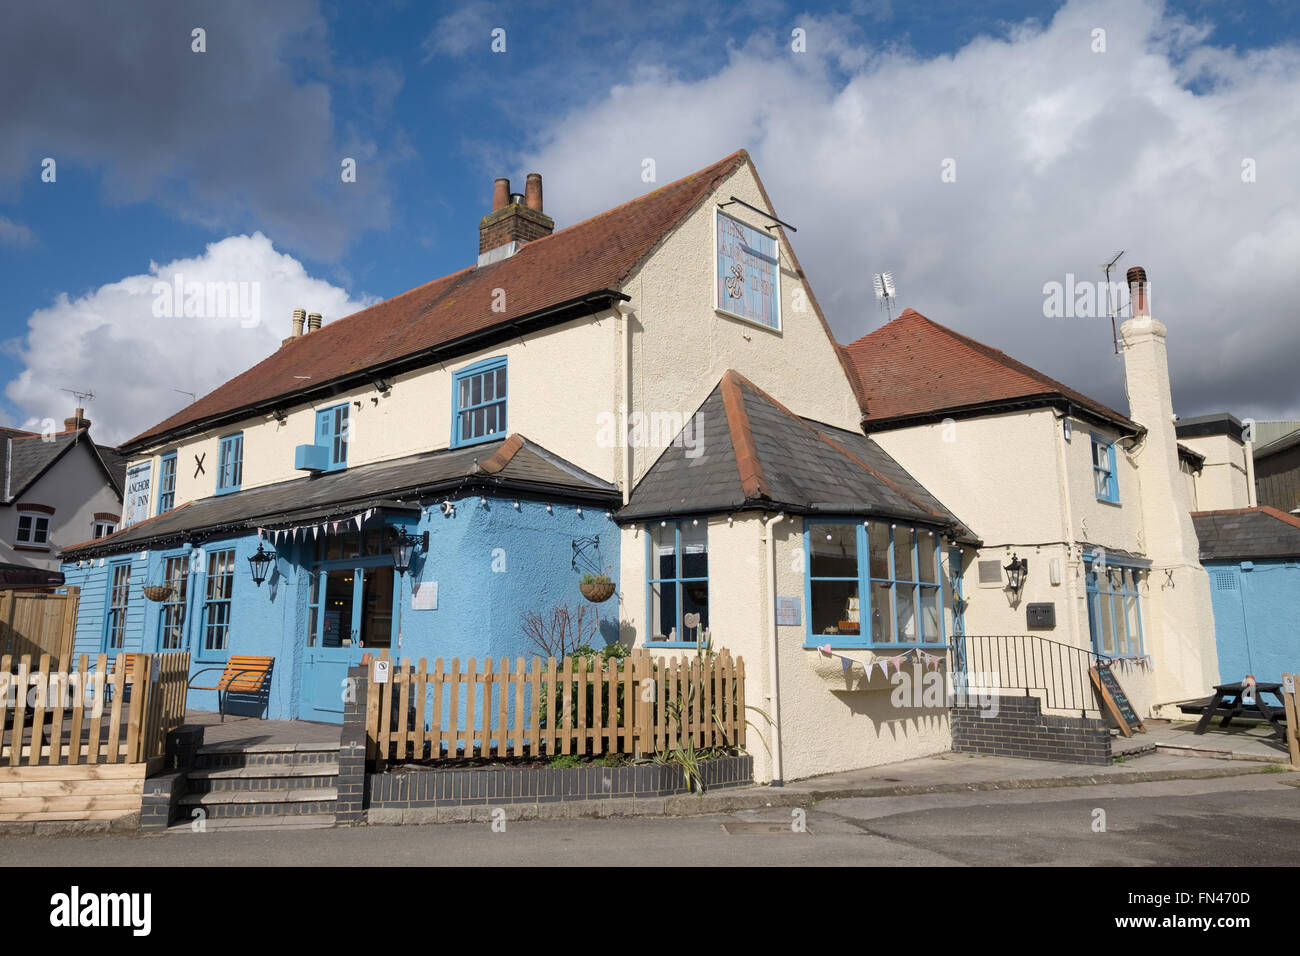 The Anchor Inn pub in Eling, Totton, Hampshire, UK - Stock Image